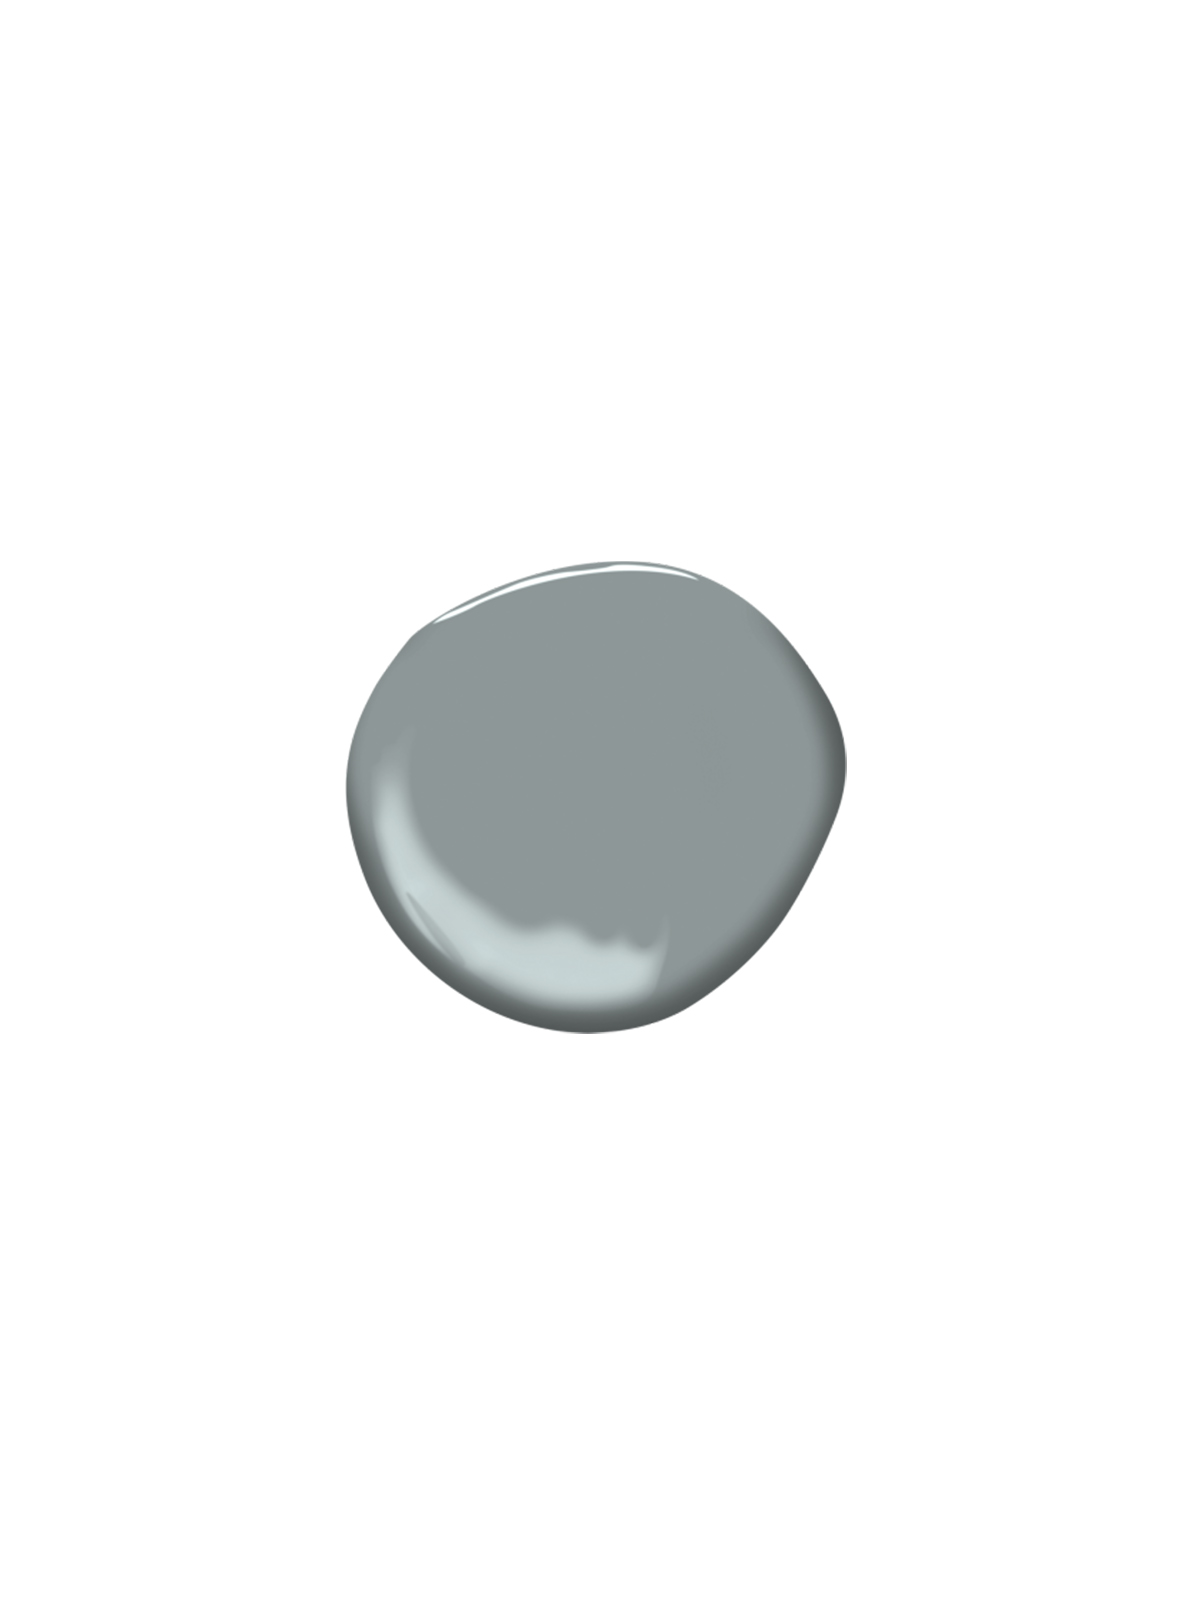 Swatch of Brewster Gray, by Benjamin Moore